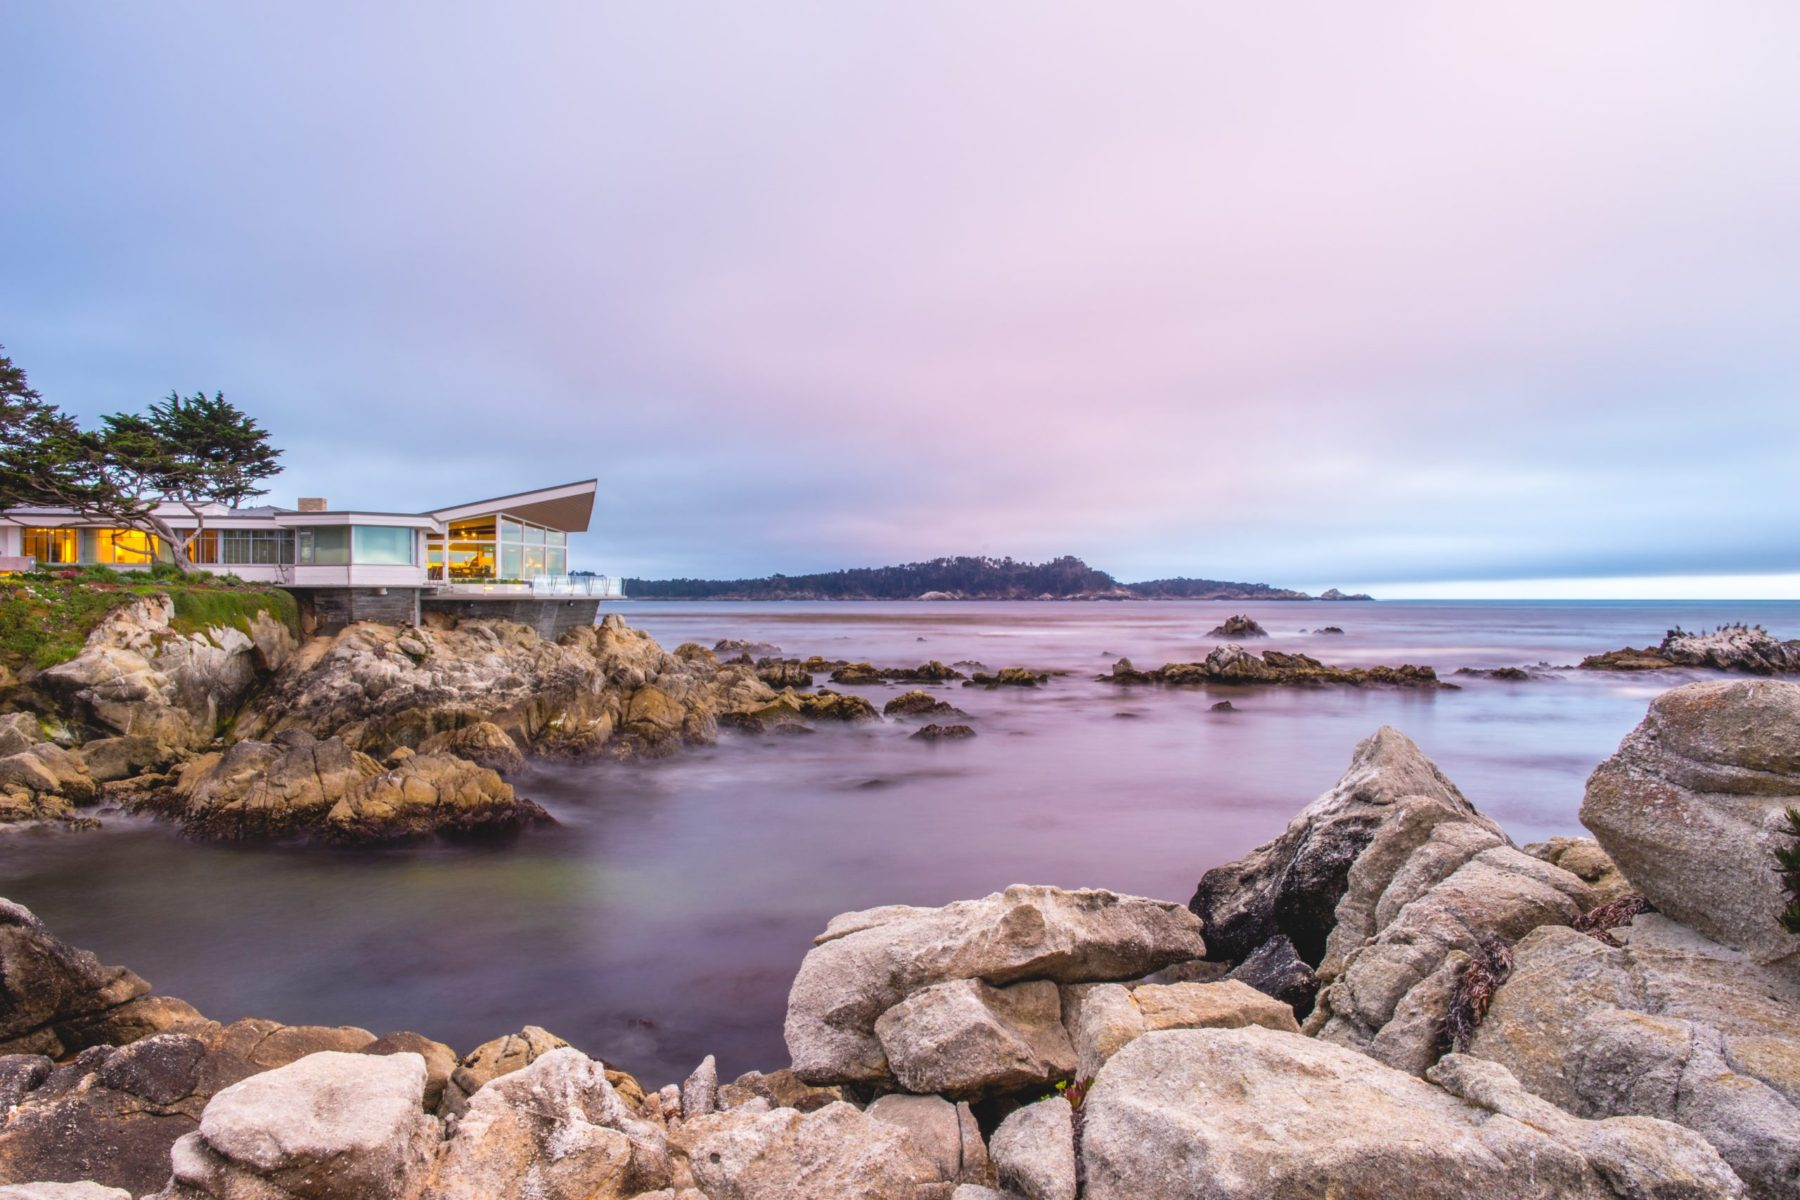 Buying A Second Home In Carmel By The Sea The Heinrich Team